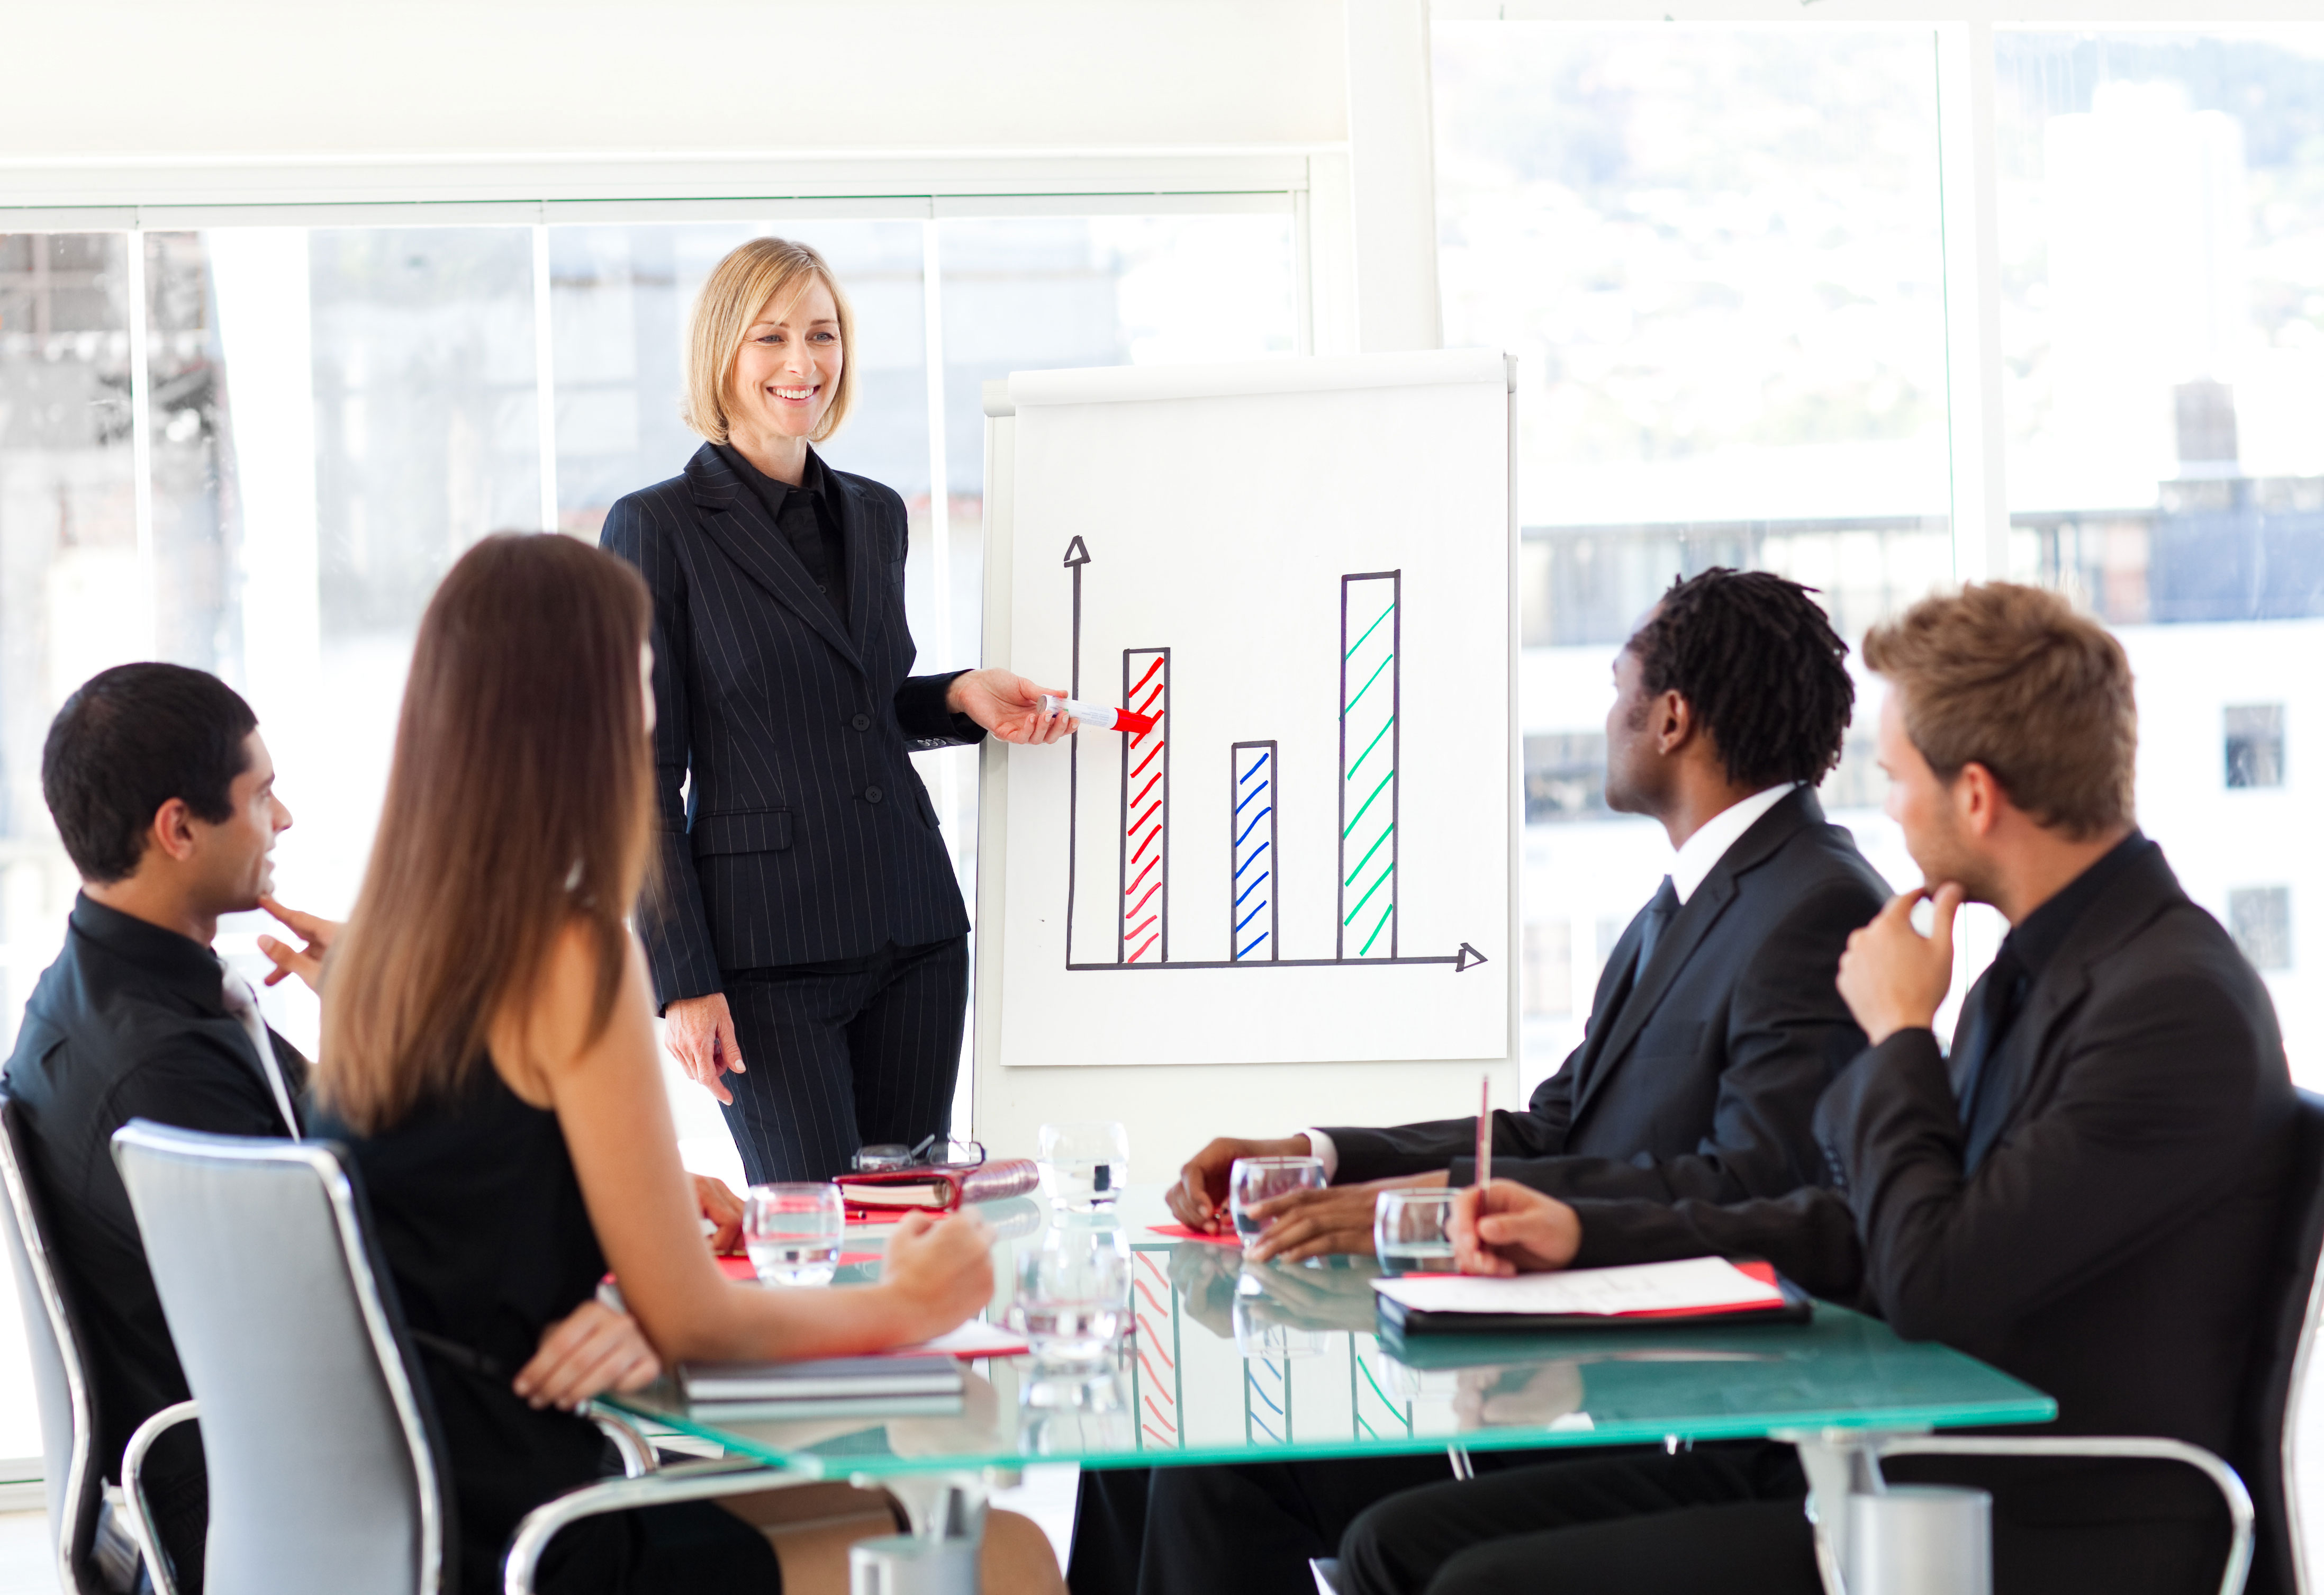 7 Trainer's Tips For Hotel Reservations Sales Success